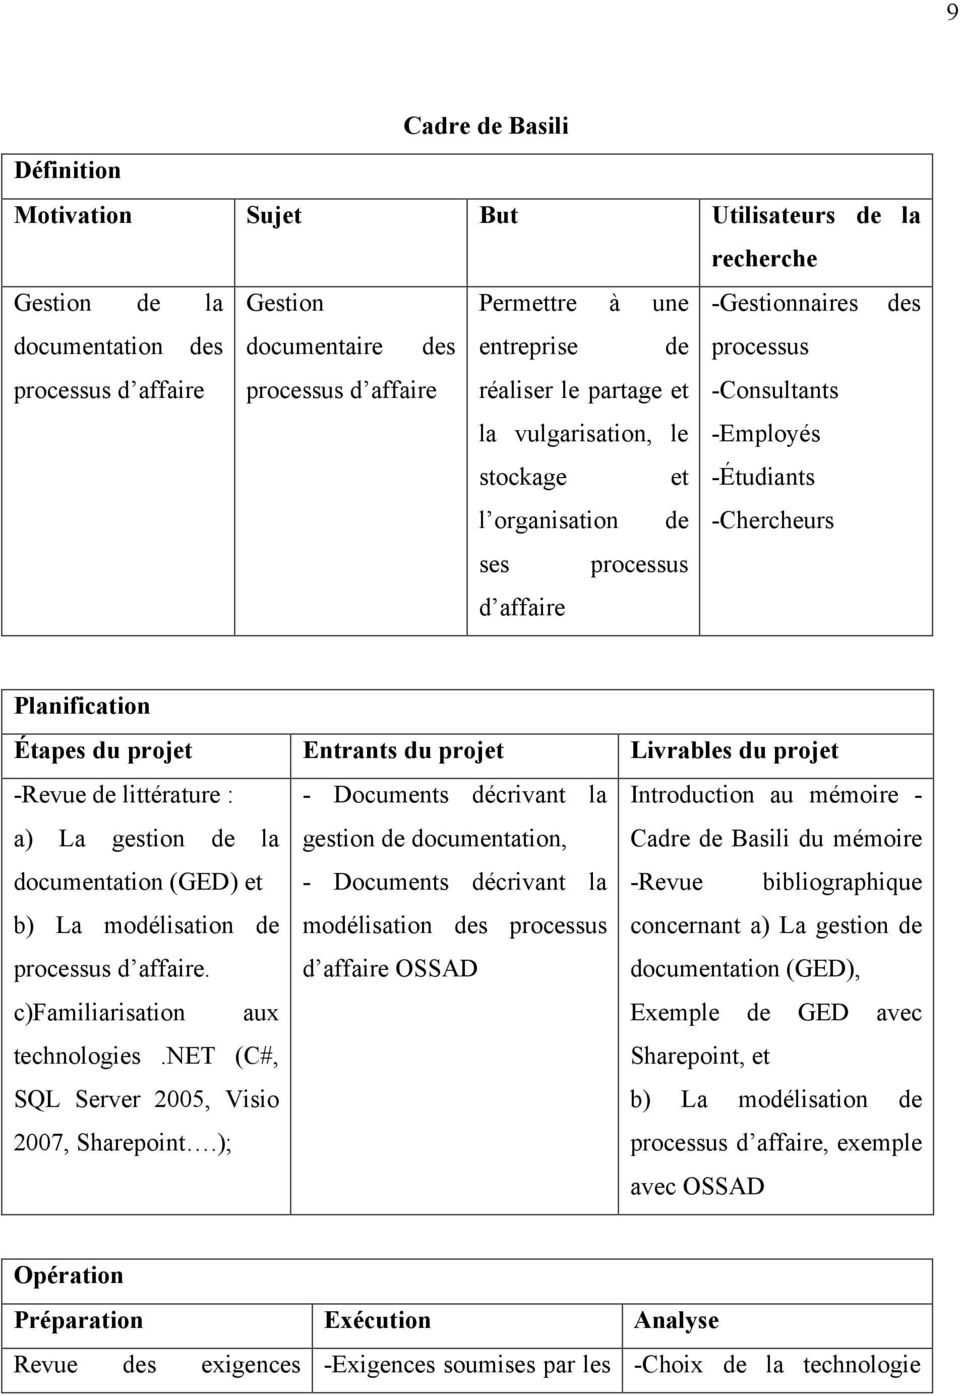 Étapes du projet Entrants du projet Livrables du projet -Revue de littérature : - Documents décrivant la Introduction au mémoire - a) La gestion de la gestion de documentation, Cadre de Basili du